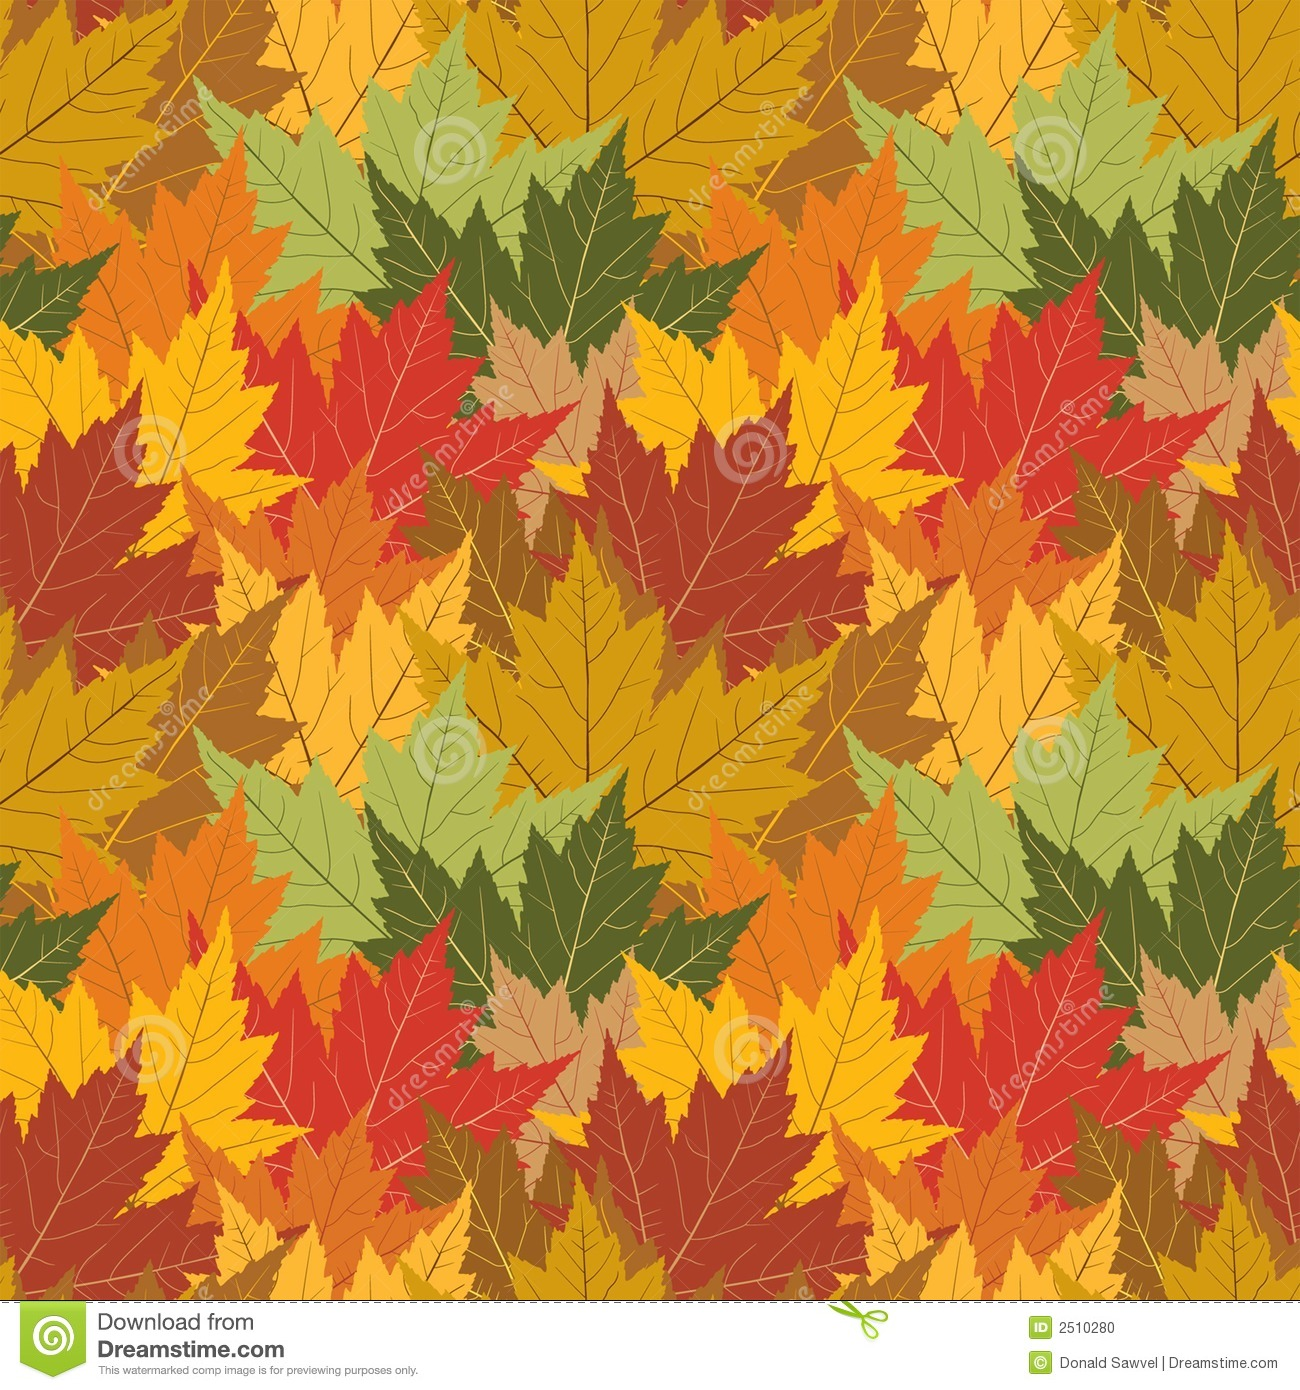 Fall Of The Leafe Wallpaper Maple Leaf Seamless Background Stock Vector Image 2510280